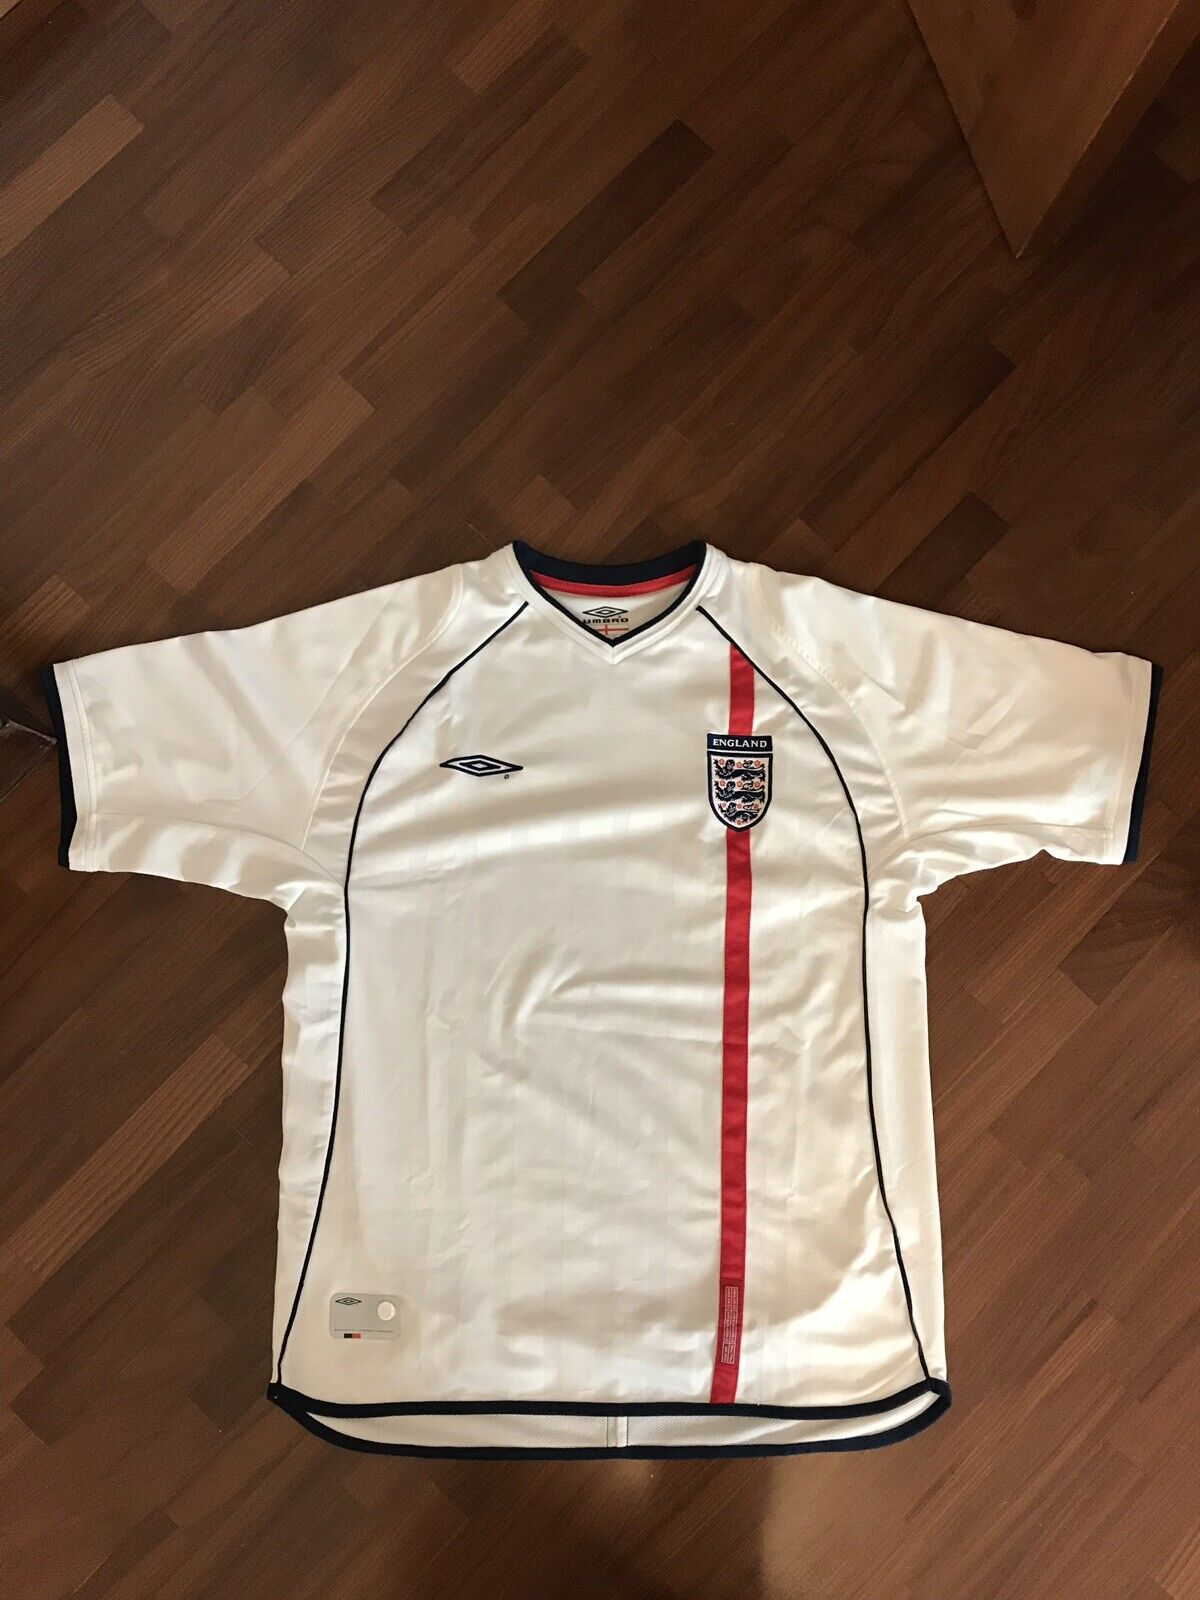 OFFICIAL UMBRO SHIRT ENGLe WORLD CUP CUP CUP 2002 MAGLIA CALCIO ORIGINALE INGHILTERRA 5fd